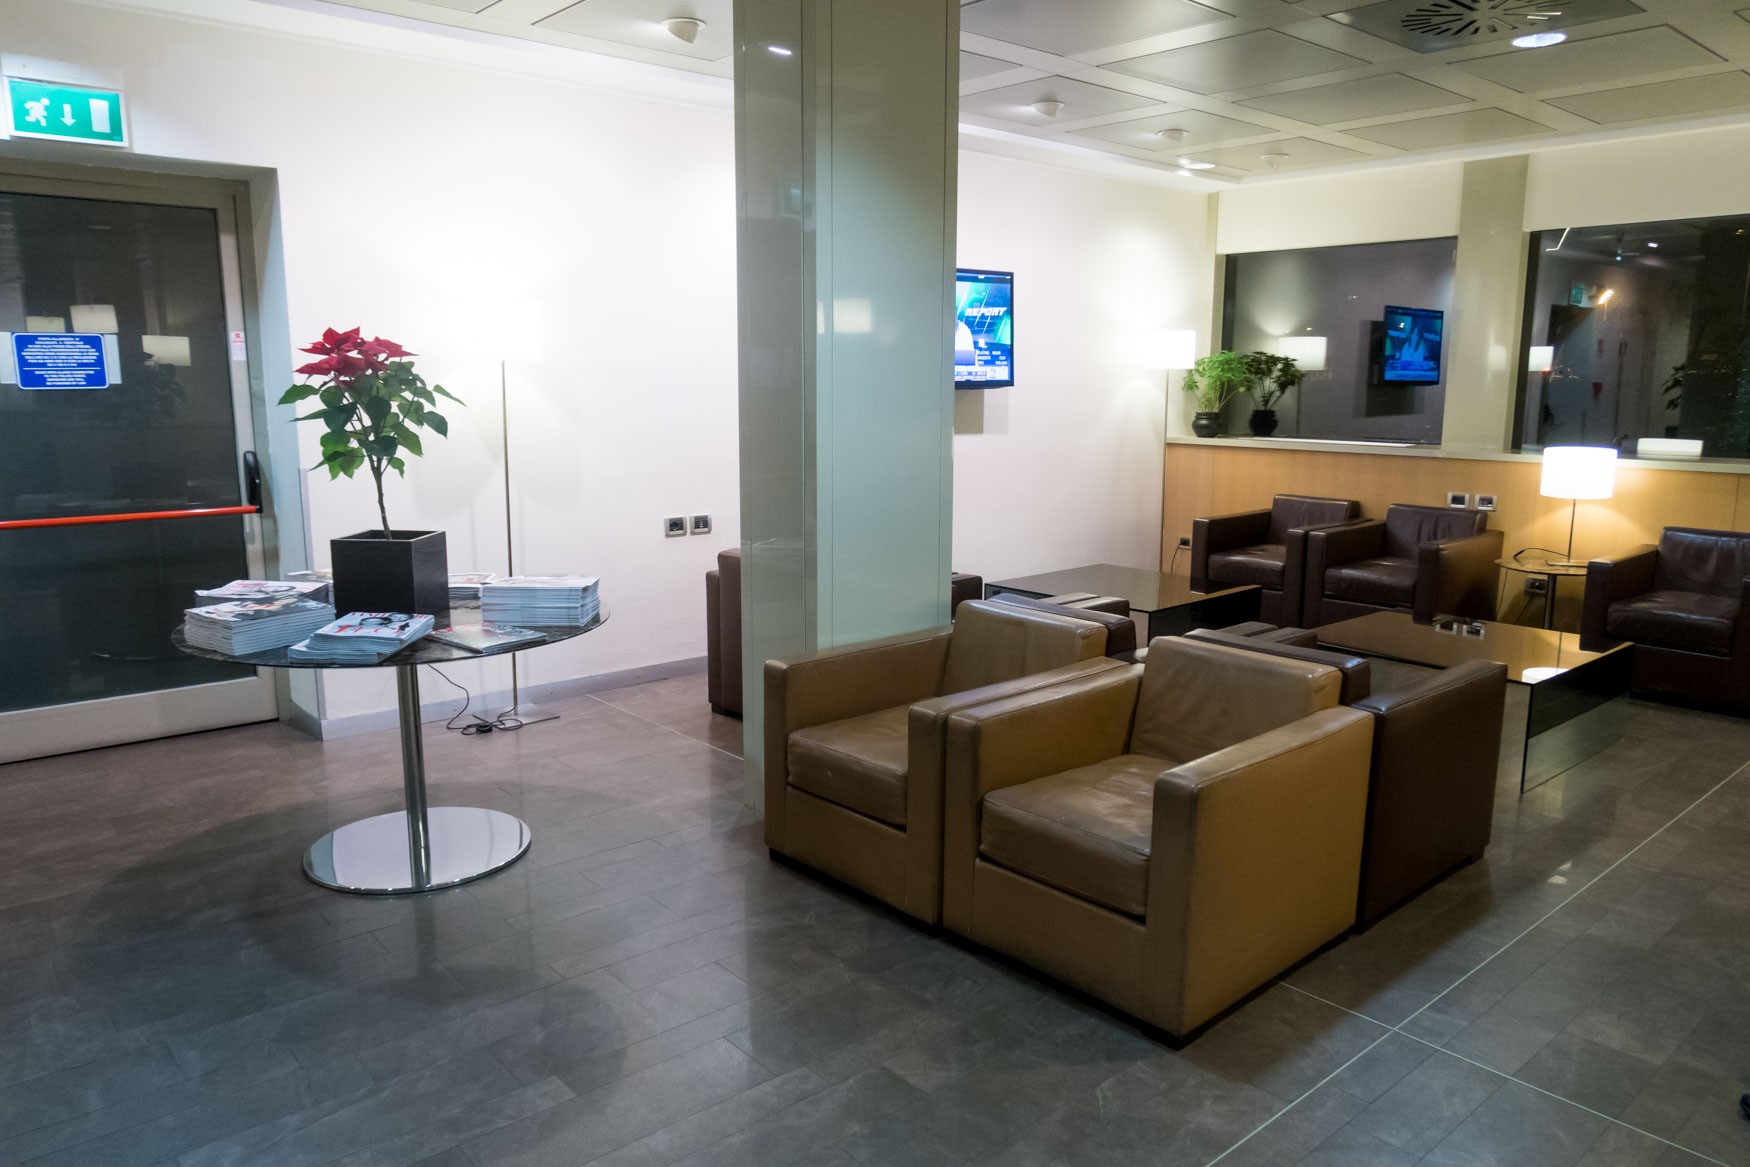 Club S.E.A. Sala Leonardo Milan Linate Main Seating Area